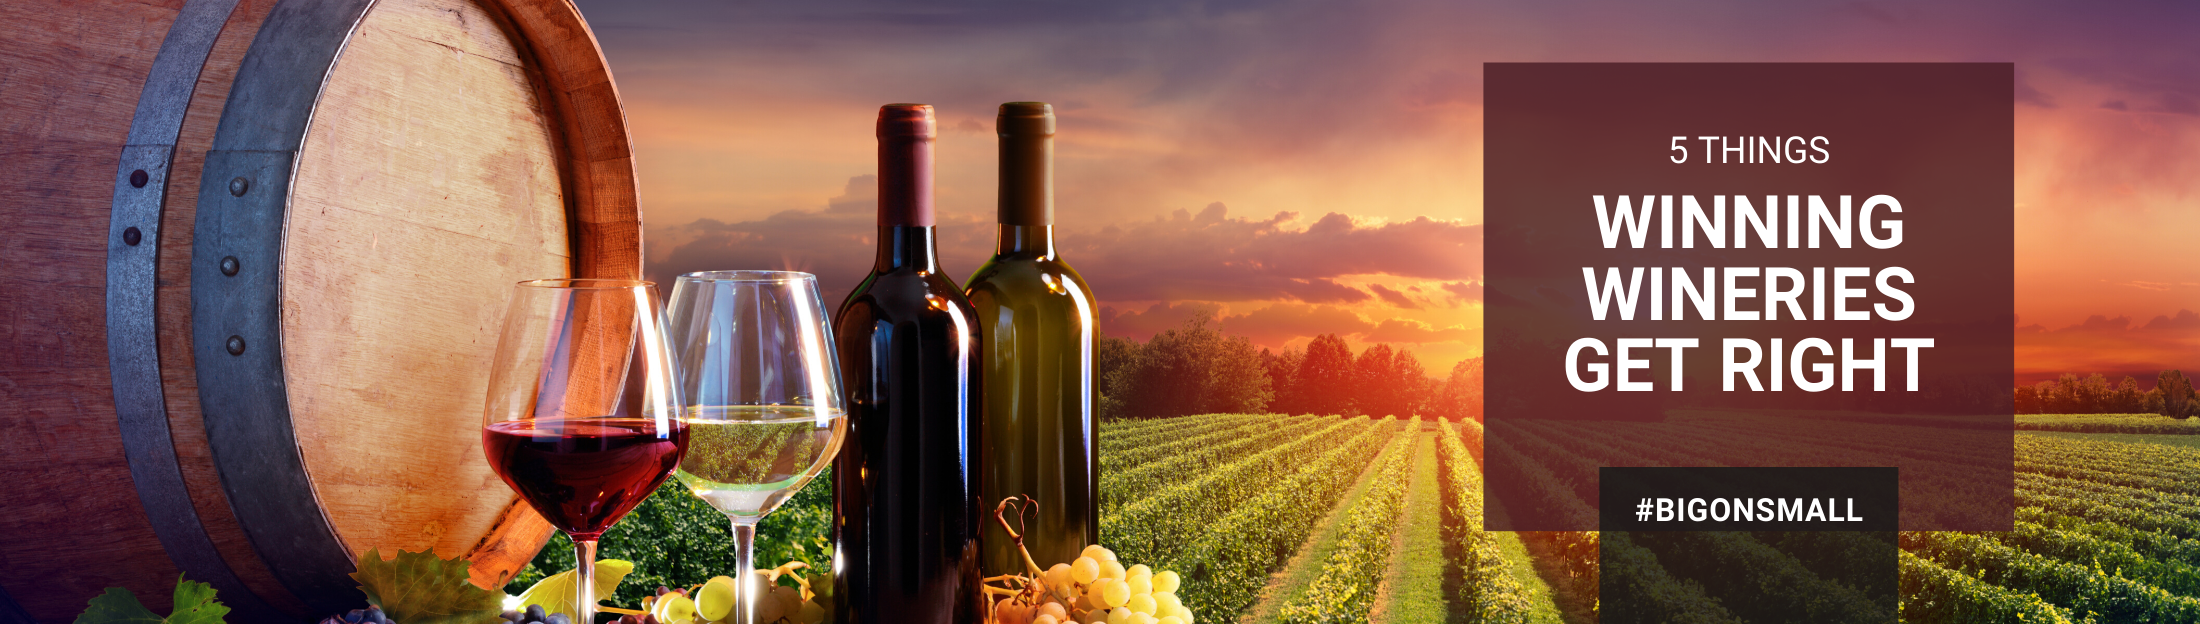 5  Things Winning Wineries Get Right